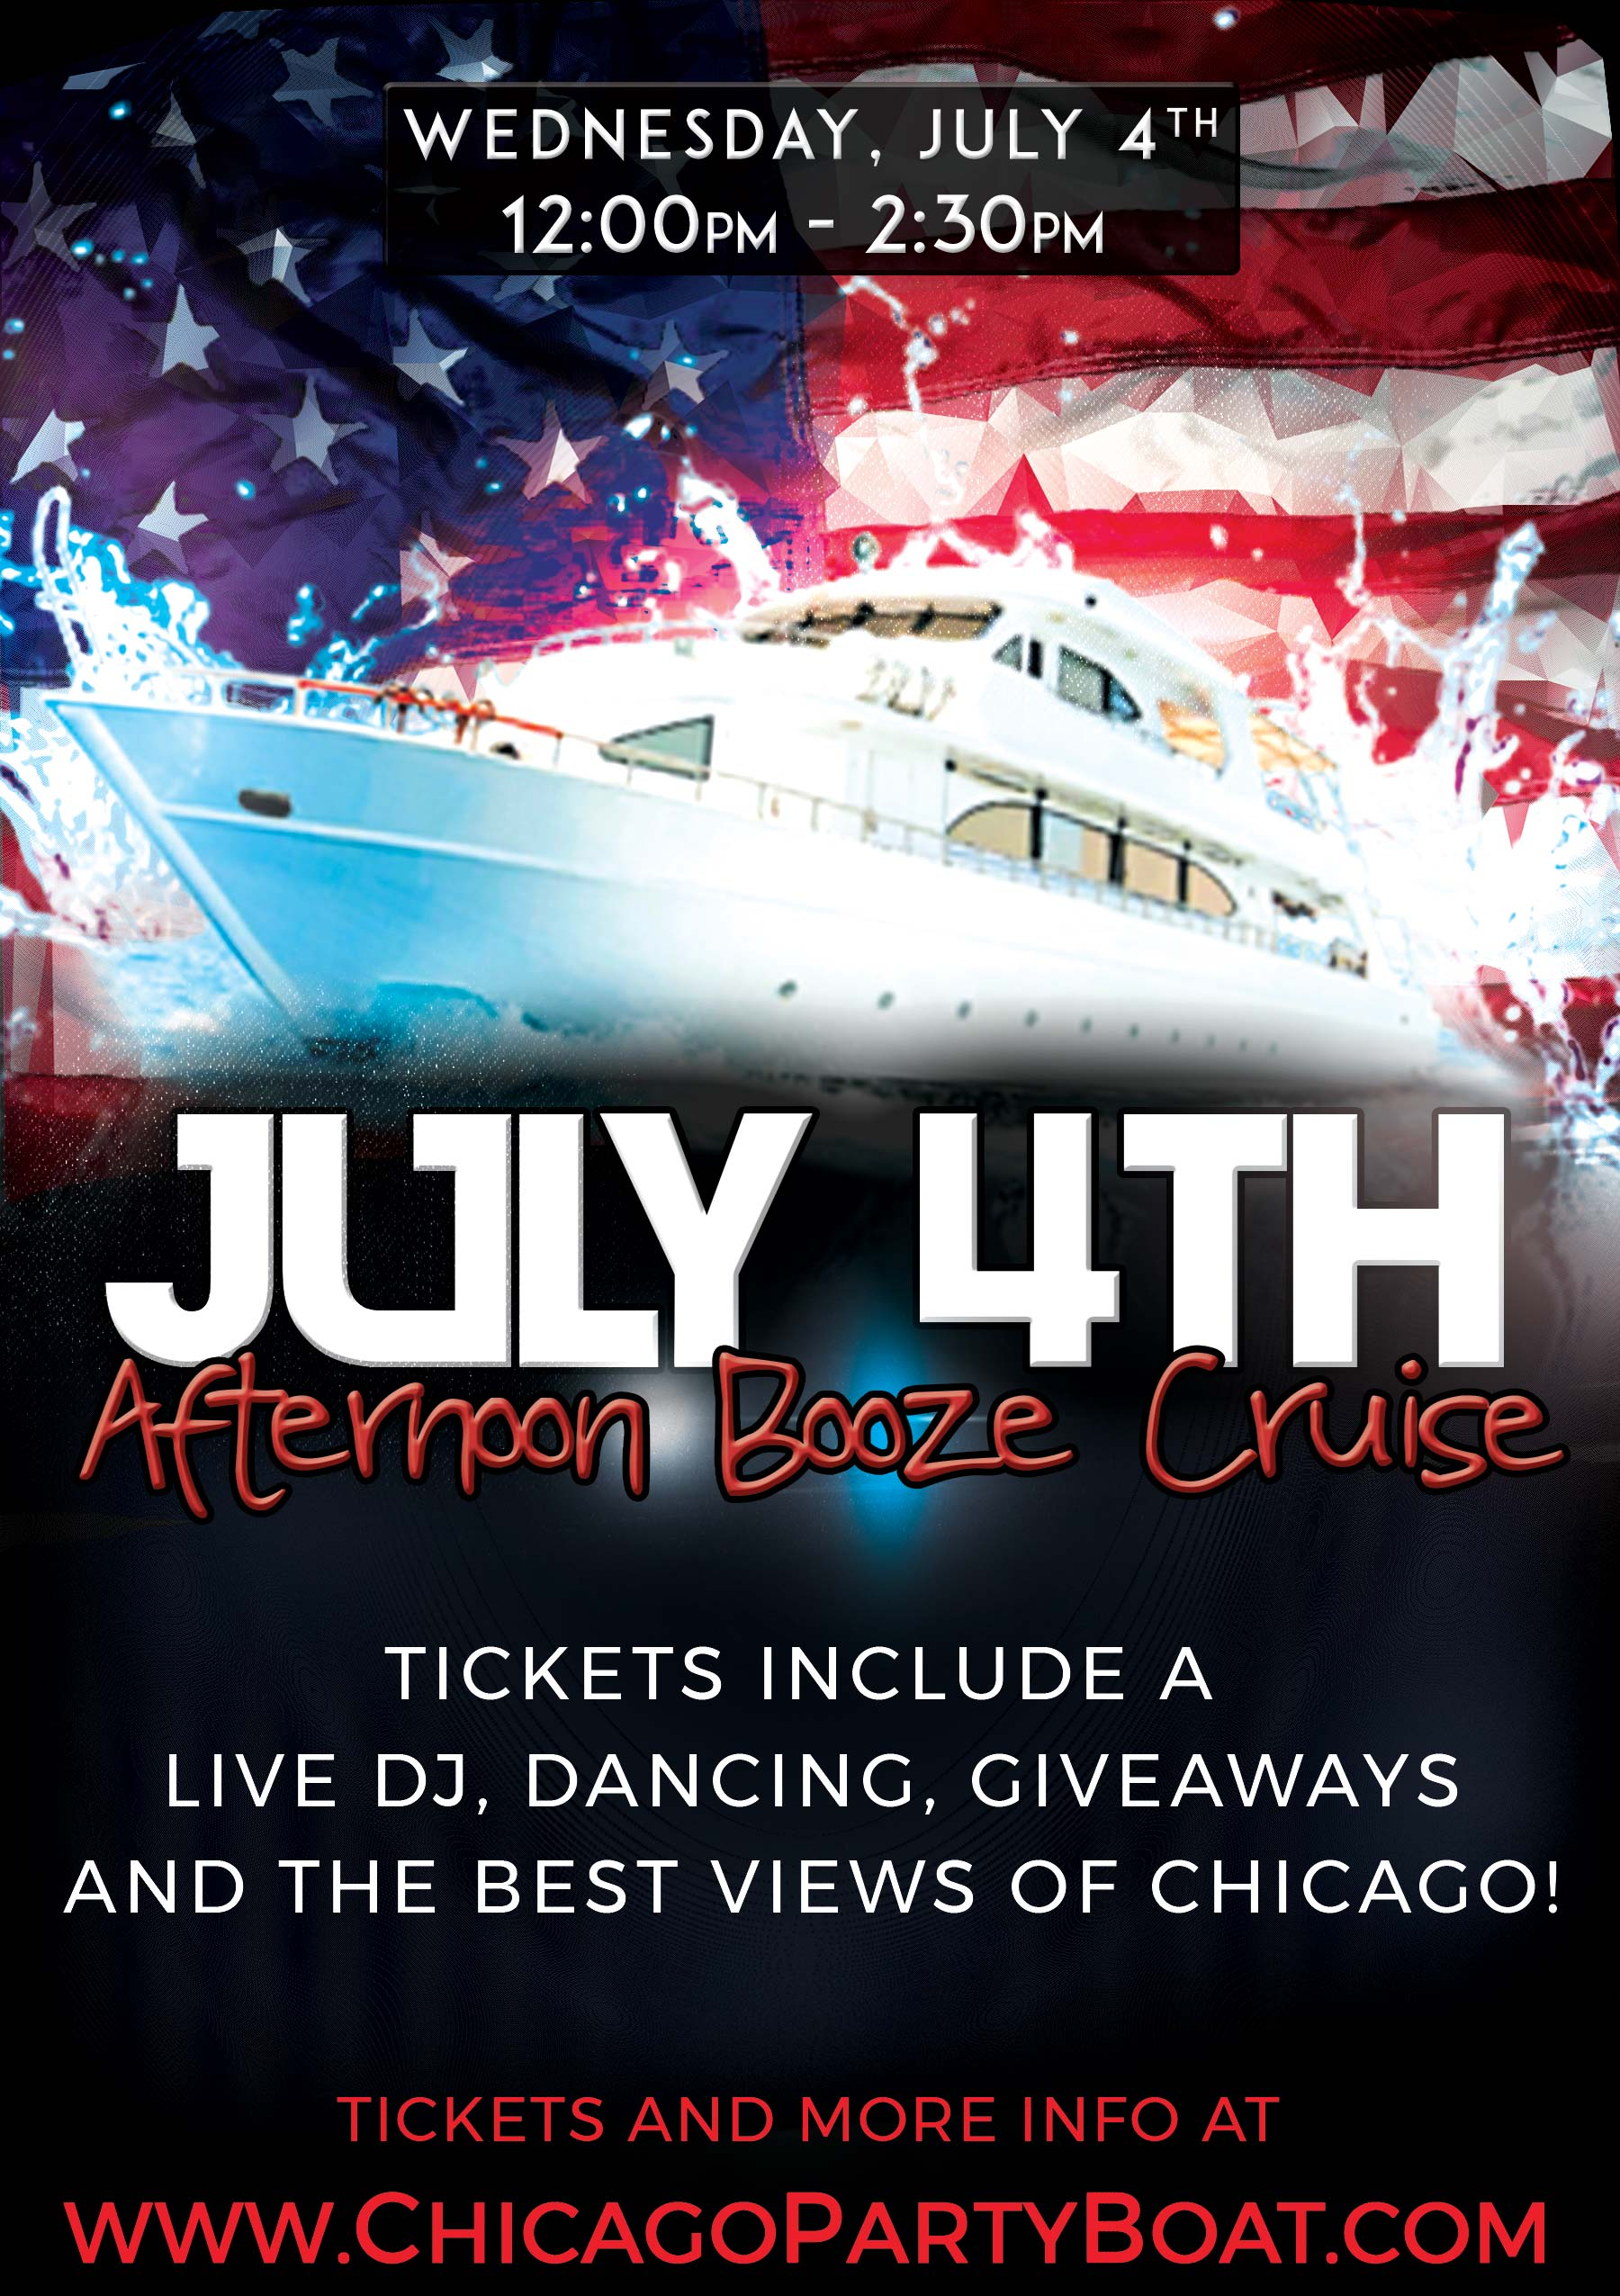 July 4th Independence Day Party Afternoon Booze Cruise - Tickets include a Live DJ, Dancing, Giveaways, and the best views of Chicago!